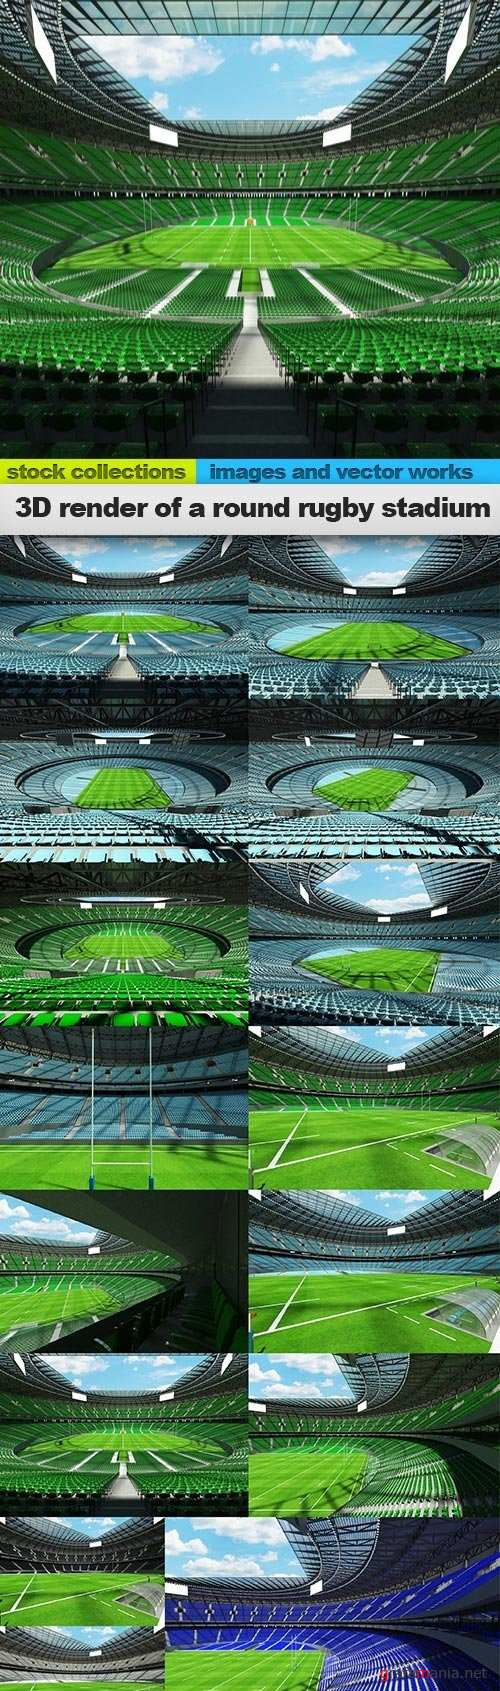 3D render of a round rugby stadium, 15 x UHQ JPEG